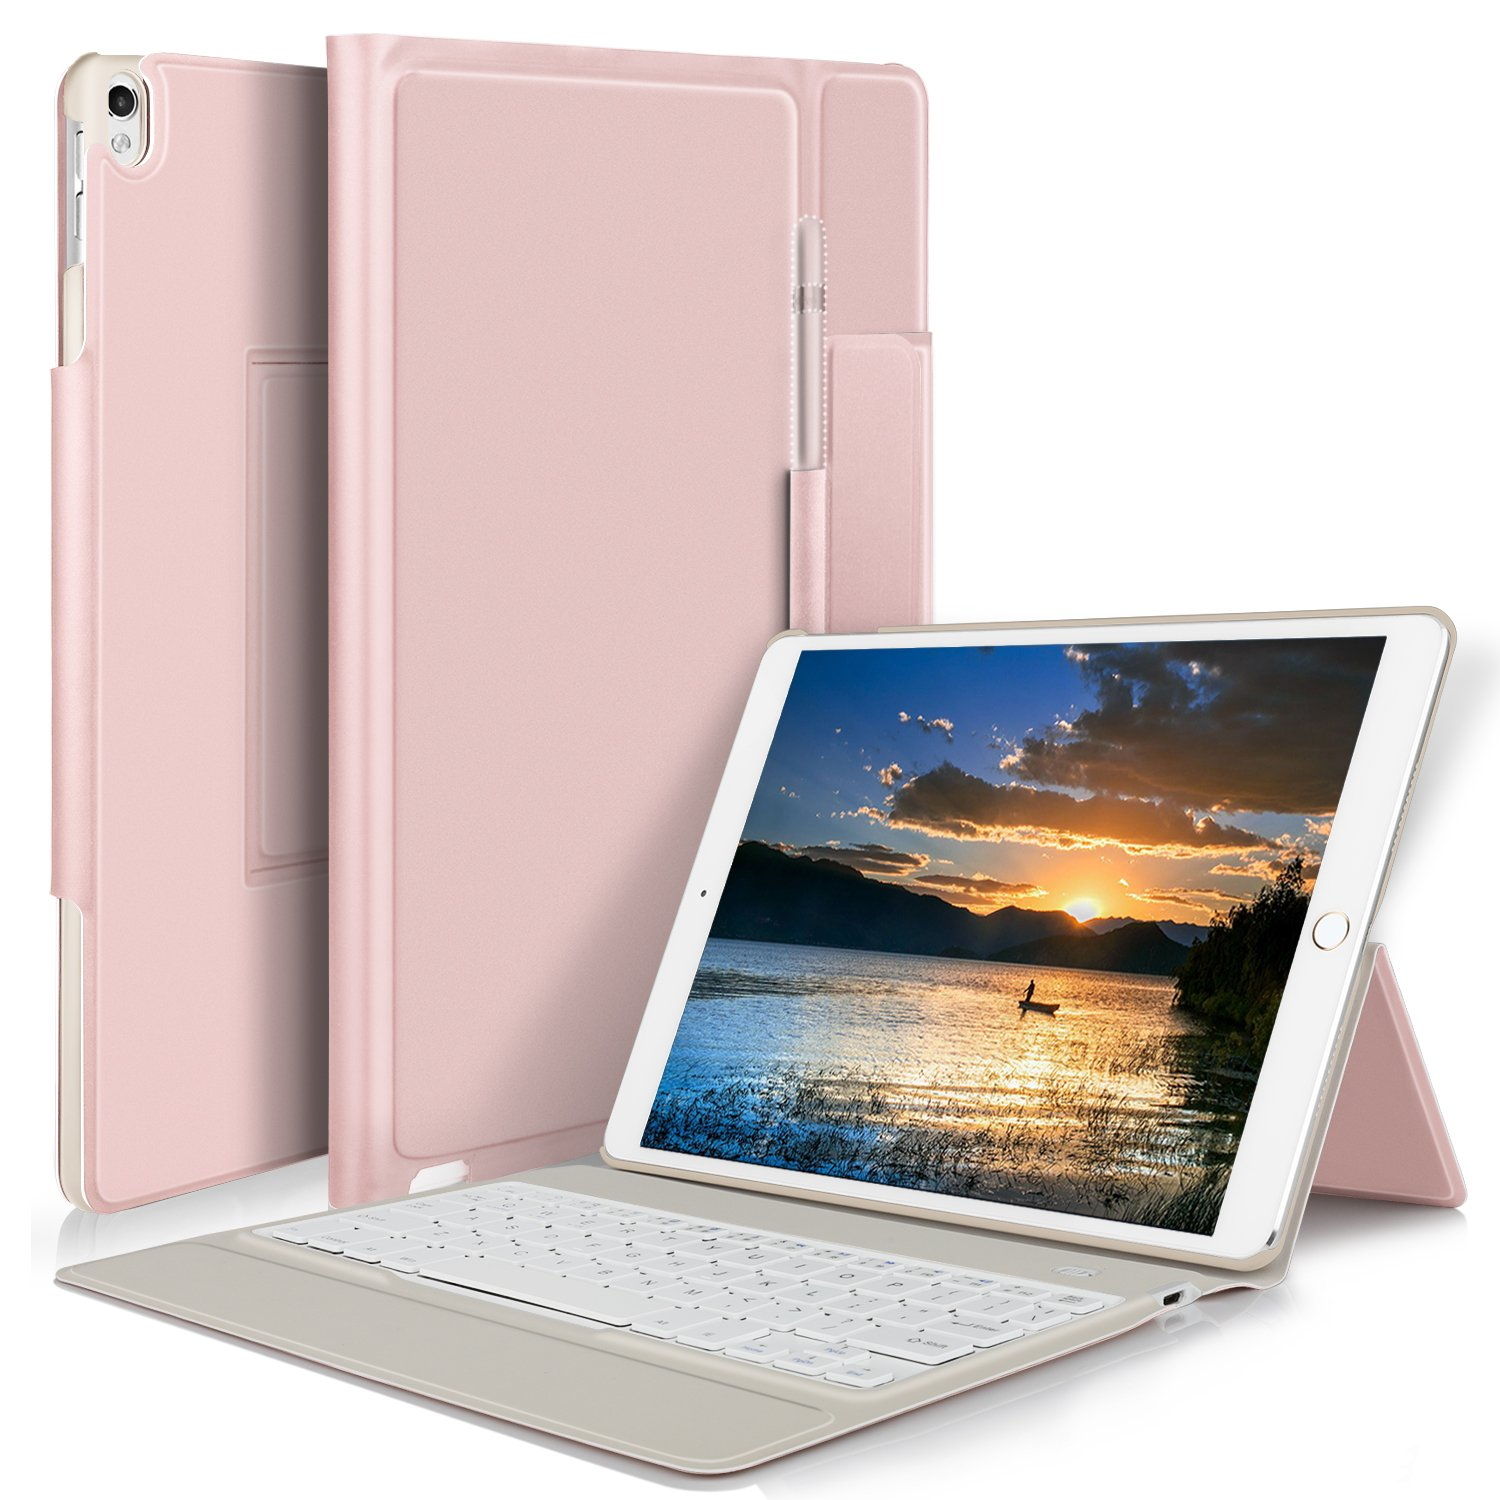 IVSO Apple iPad pro 10.5 inch Stand Case with Wireless Keyboard, Ultra-Thin Stand Cover Case for Apple iPad pro 10.5 inch 2017 Tablet (Rose Gold)